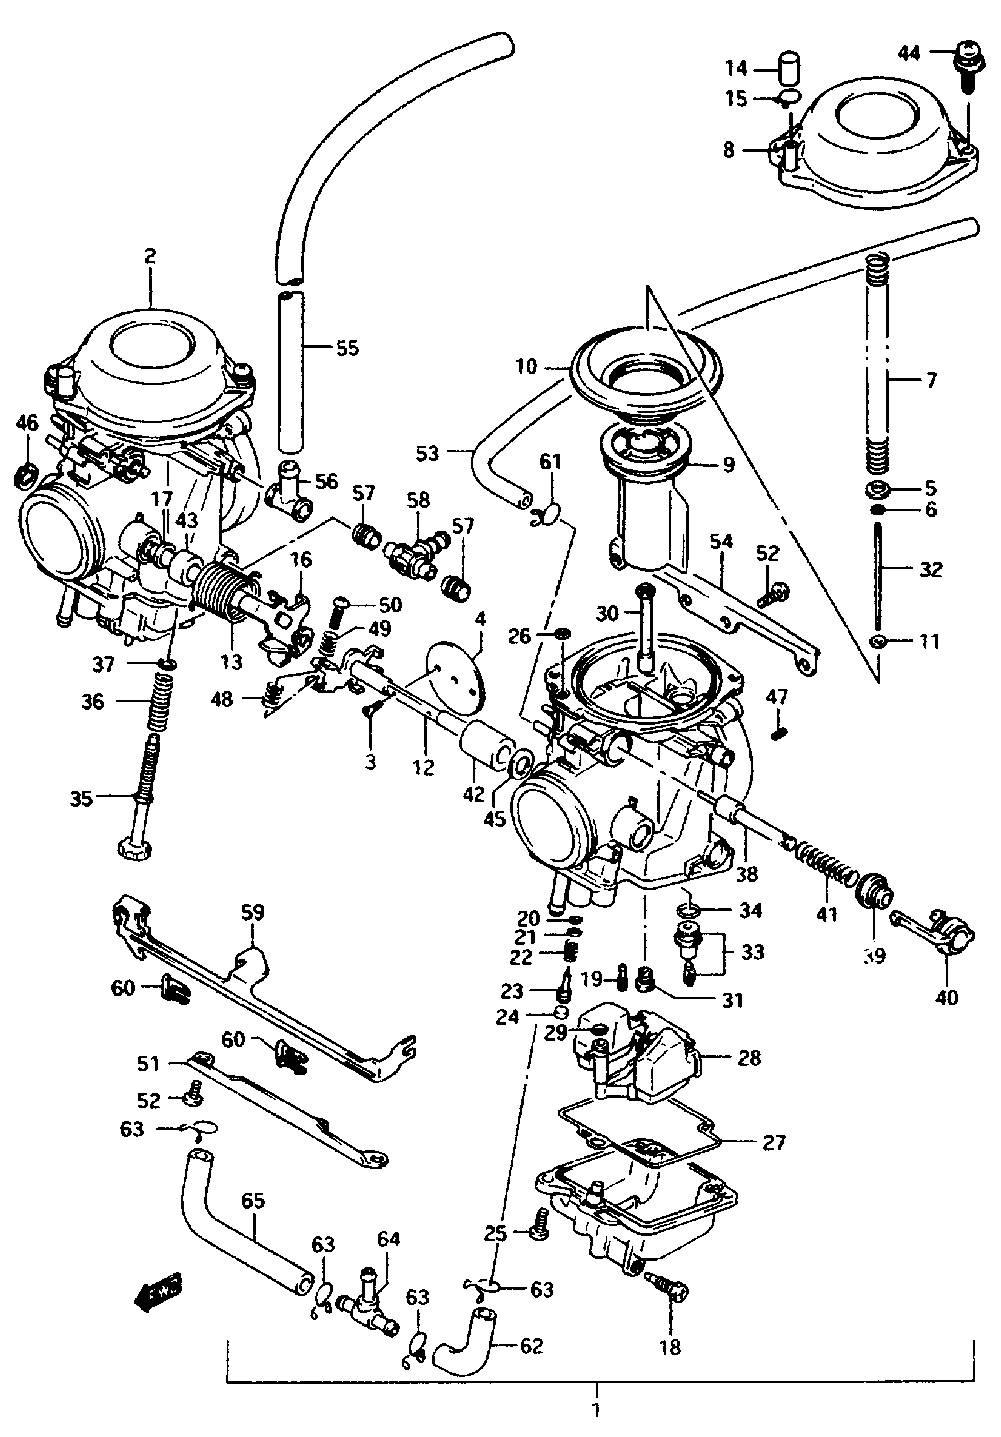 Wiring Diagram For 1998 Gsxr 600 in addition Diagram Of Suzuki 2006 Gsxr 1000 Clutch likewise 3996 1542035f01 Strainer Fuel Pump Suzuki Dl 650 Dl 1000 V Strom Gsxr 600 750 1000 Gsxr 1300 Hayabusa Gsx 1400 together with Honda Cbr 600 F 1 Streetfighter Cafe Racer 10668185 likewise Kawasaki Ninja Fuse Location. on 2013 suzuki gsxr 1000